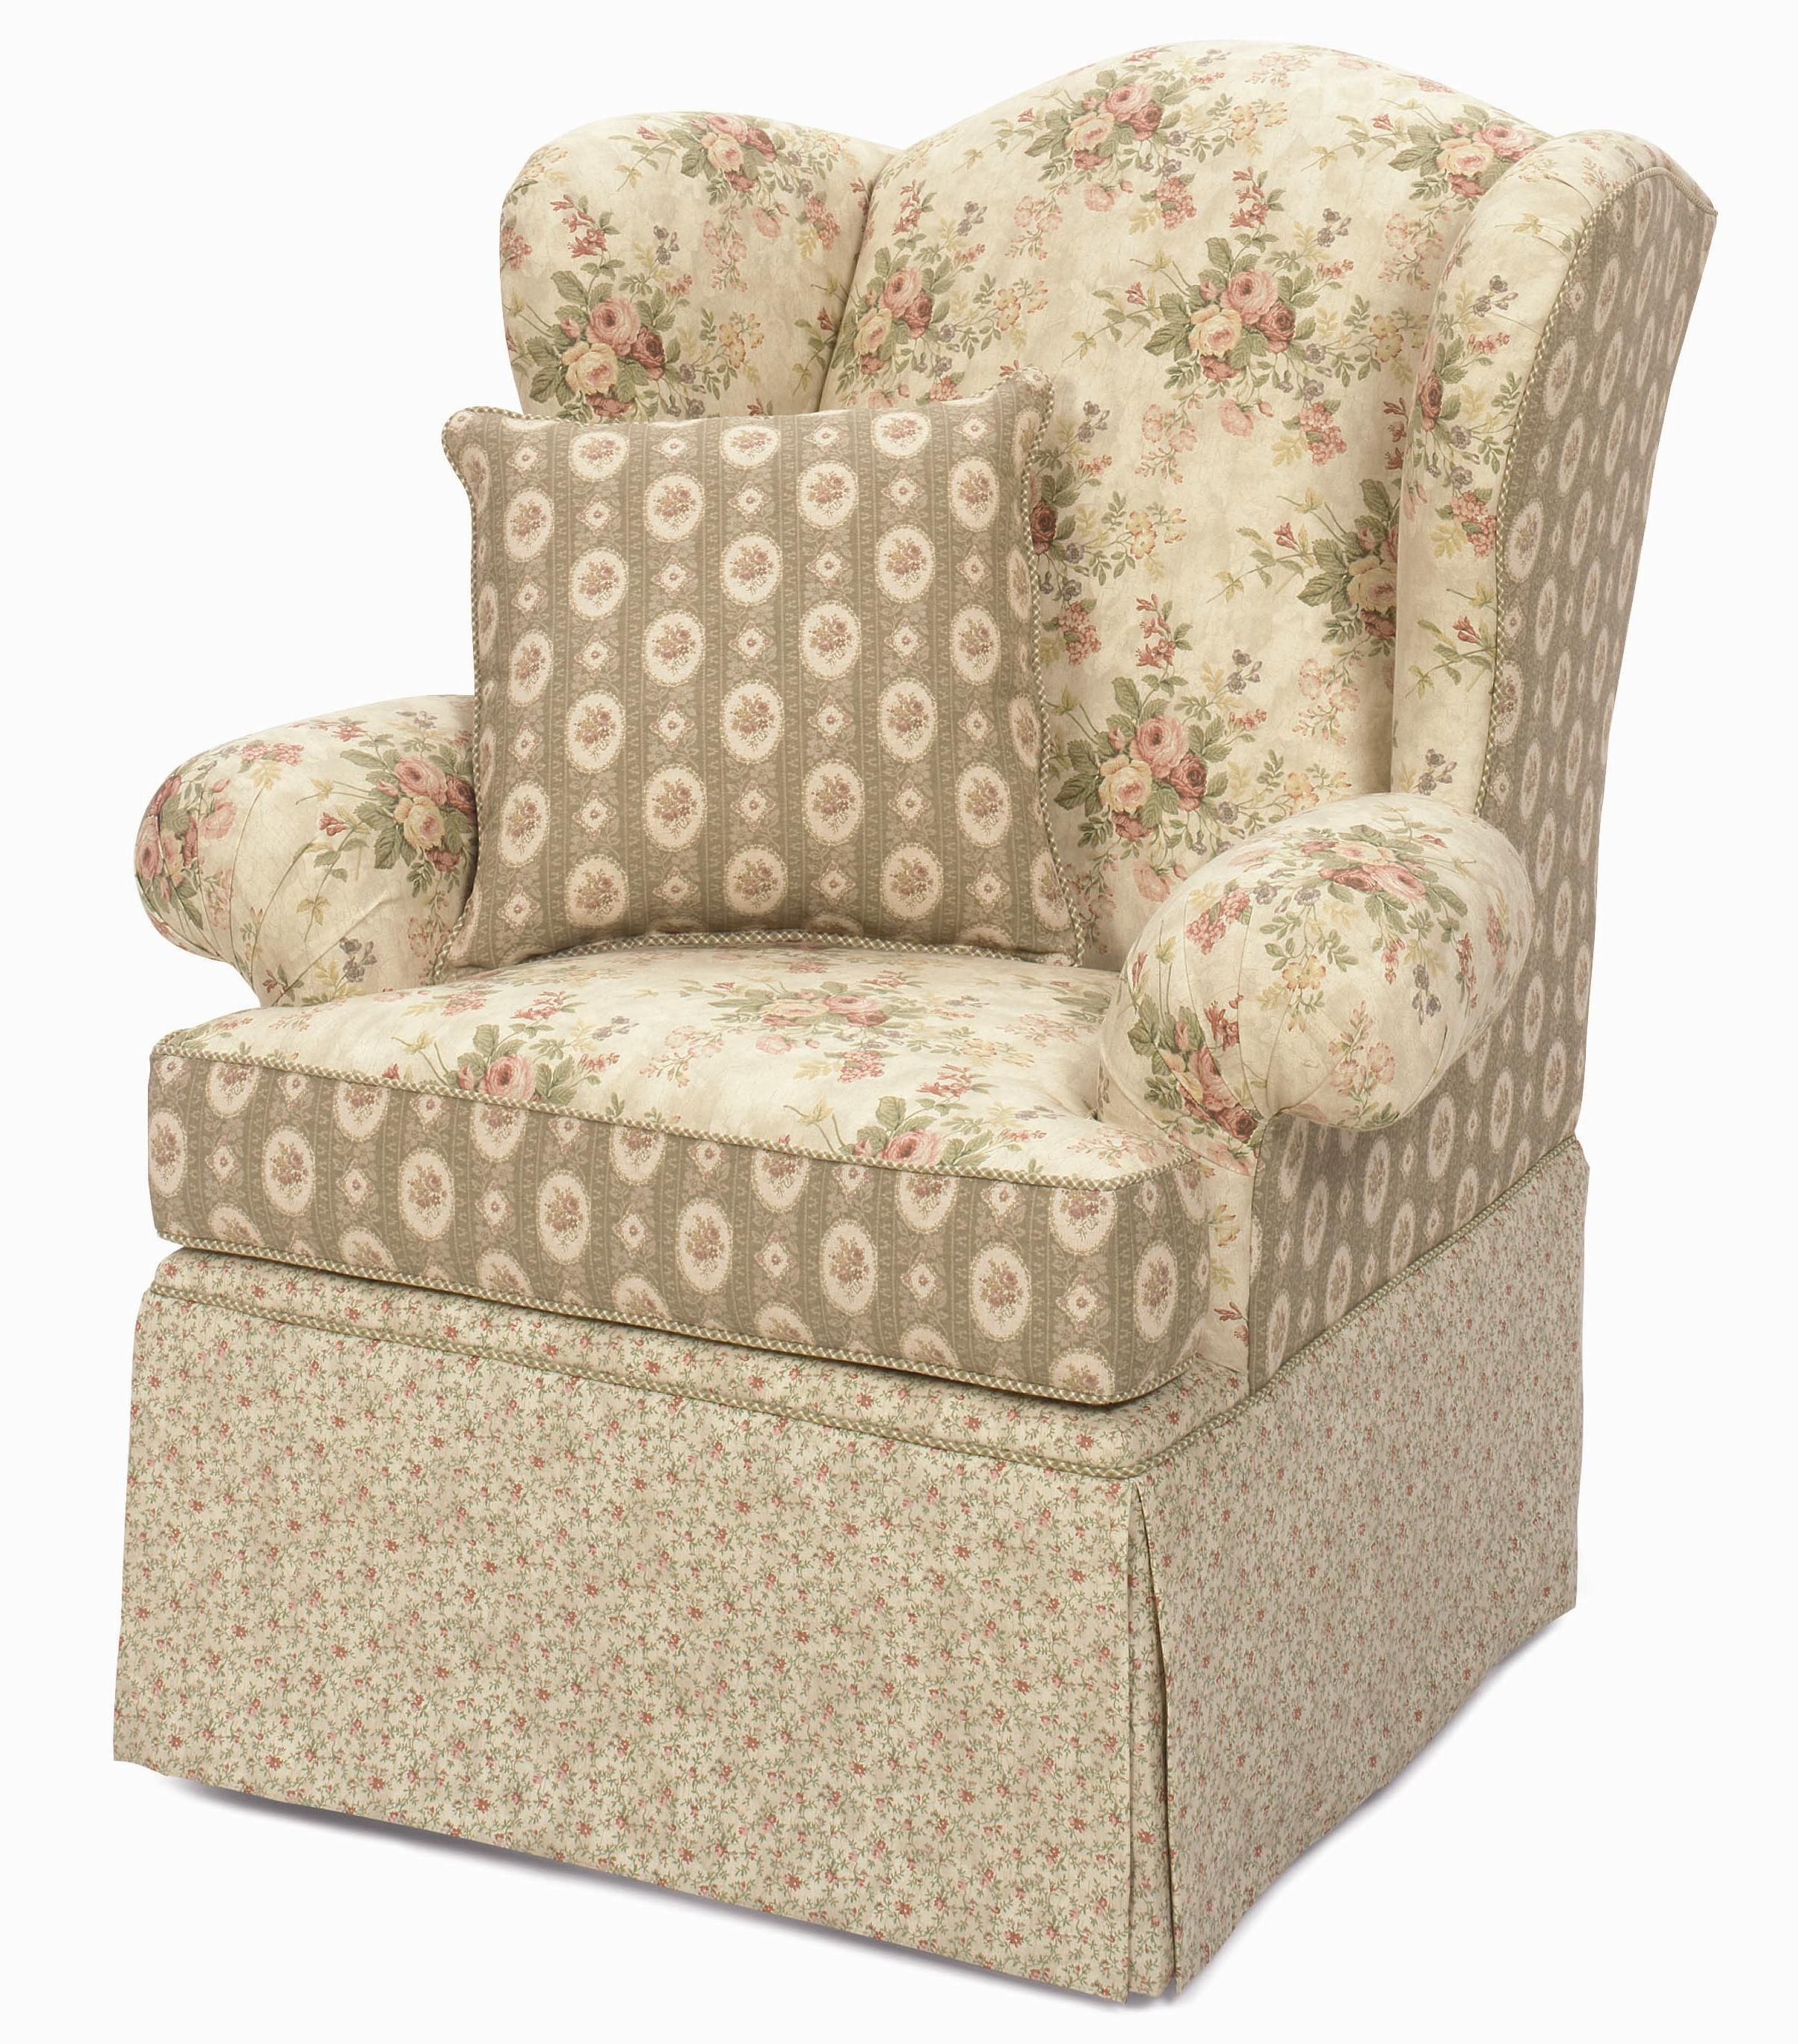 Craftmaster Accent Chairs Upholstered Wing Back Chair with Skirted